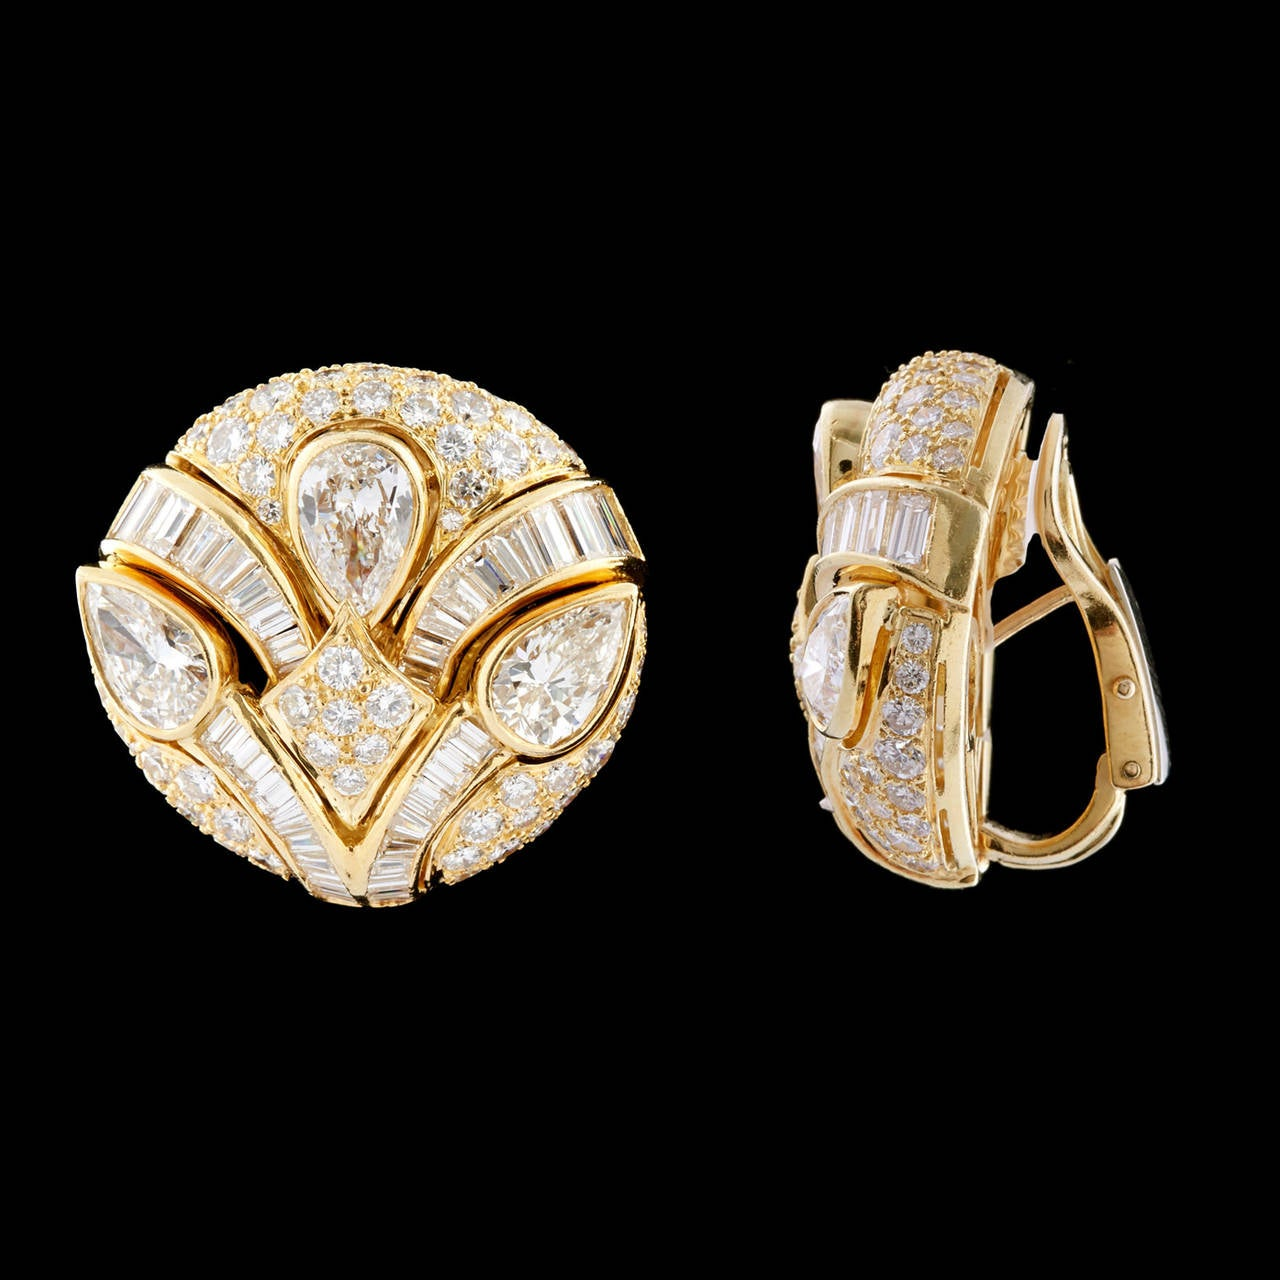 Impressive Bulgari Diamond Button Earrings 3